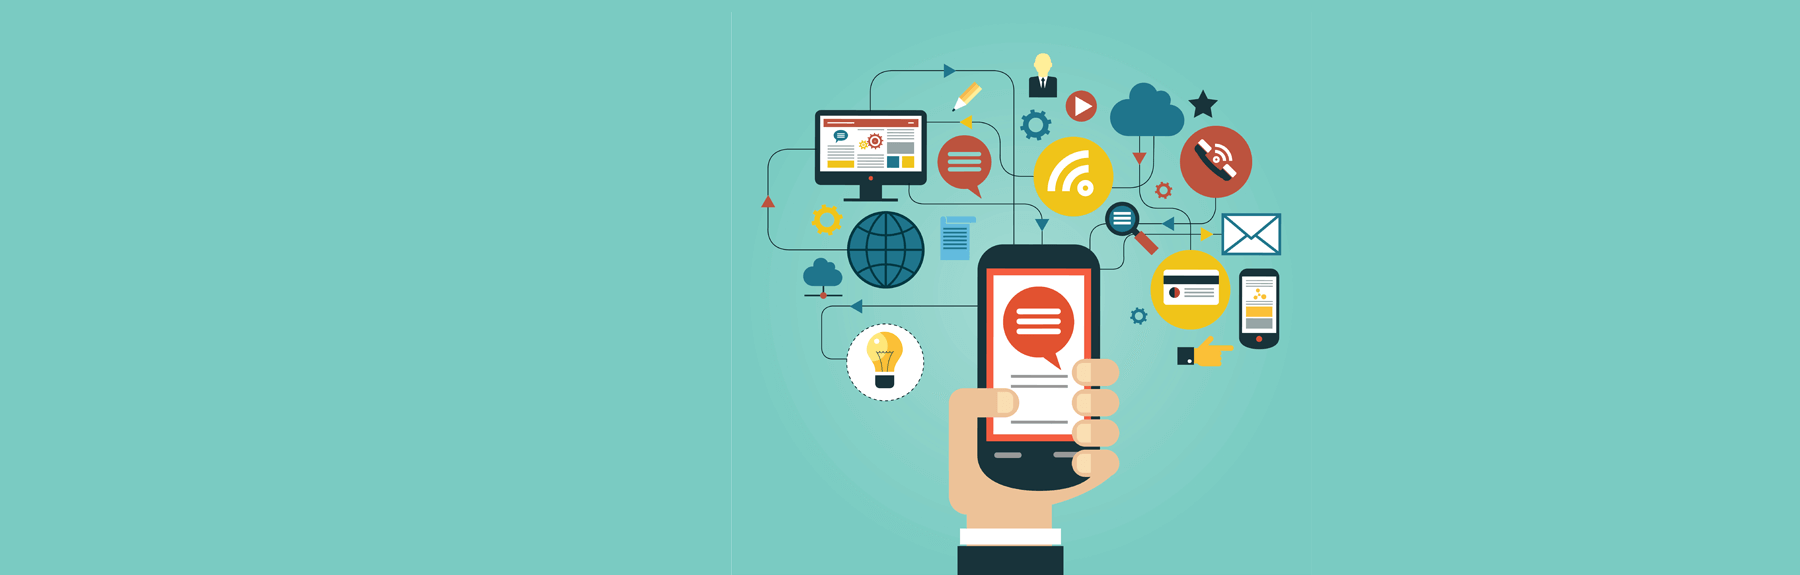 1-6-mobile-app-prototyping-mistakes-and-how-to-avoid-them